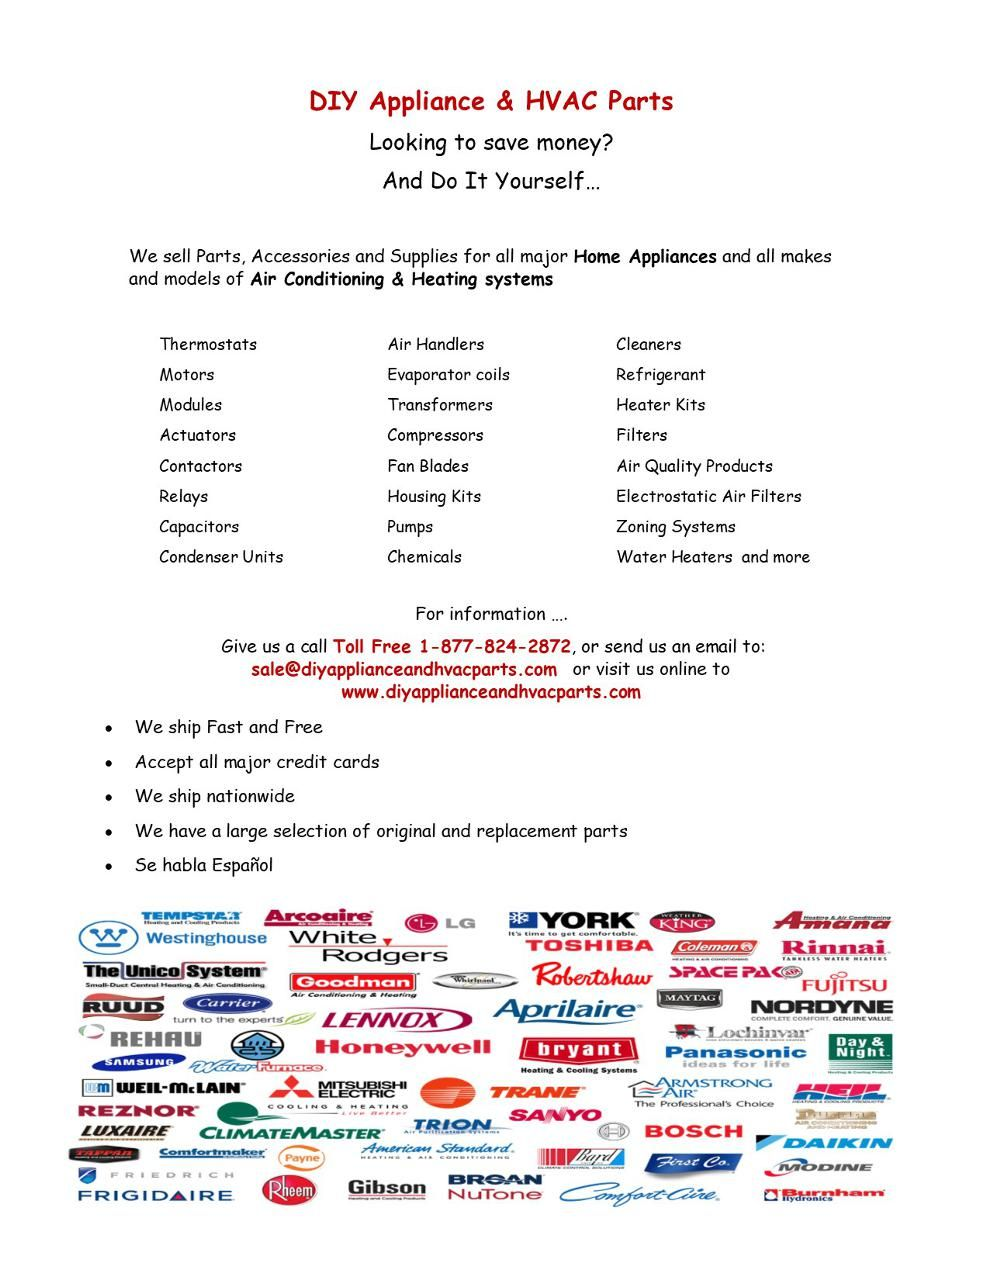 Air Conditioning Heating Parts Accessories And Suppies